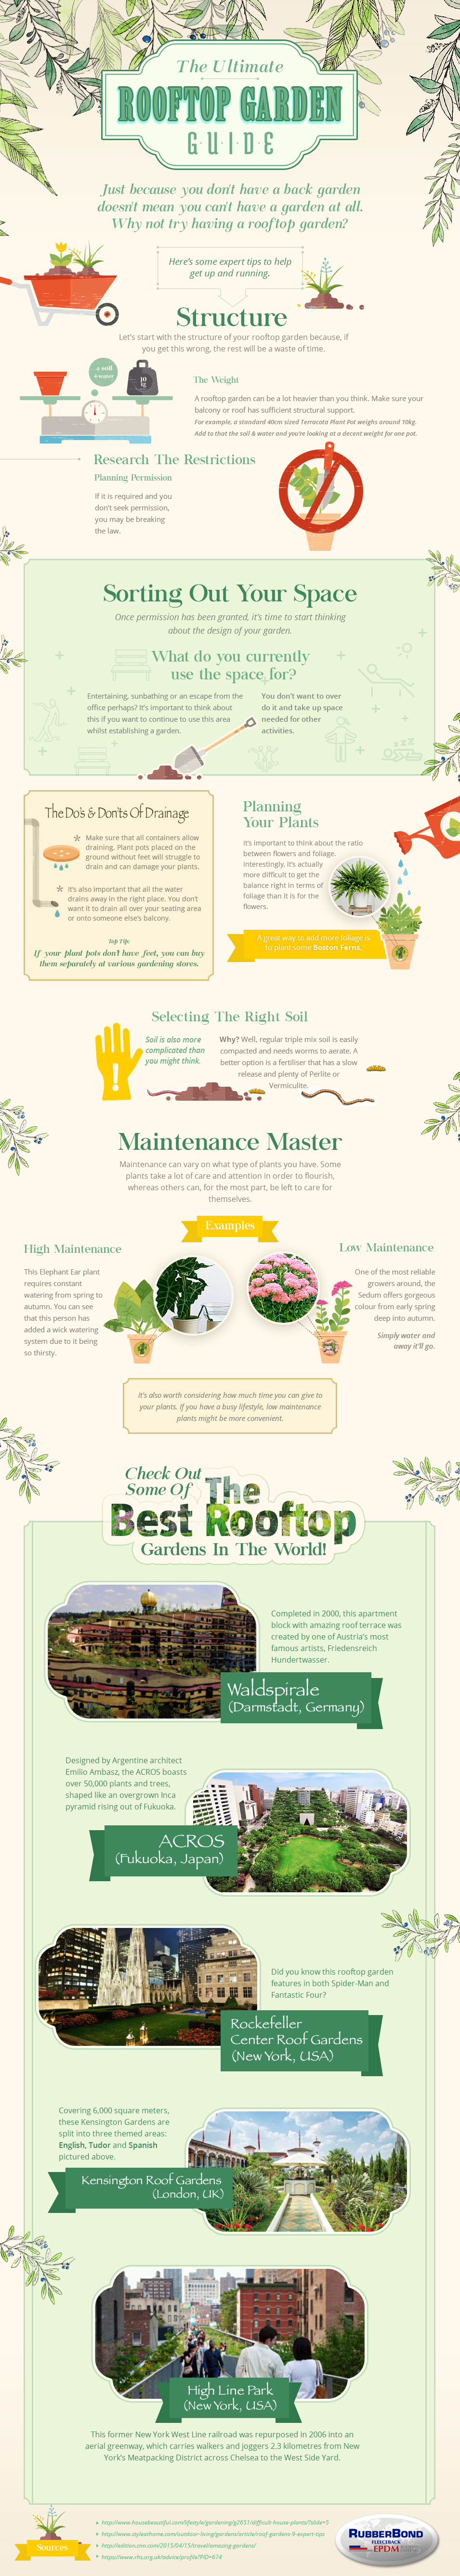 The Ultimate Rooftop Garden Guide